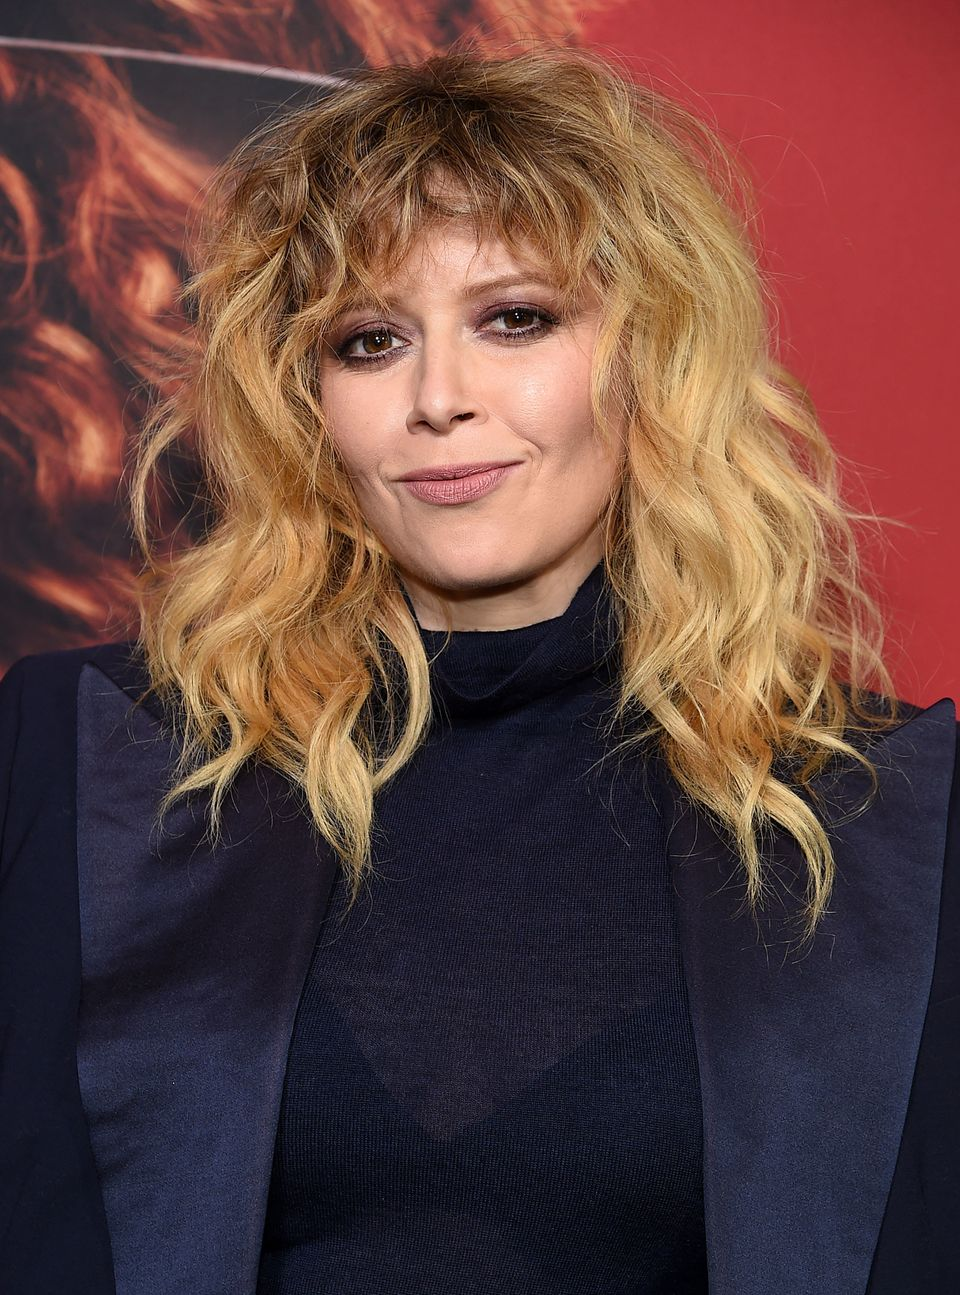 Curly Bangs Are The Coolest Hairstyle To Try In 2019